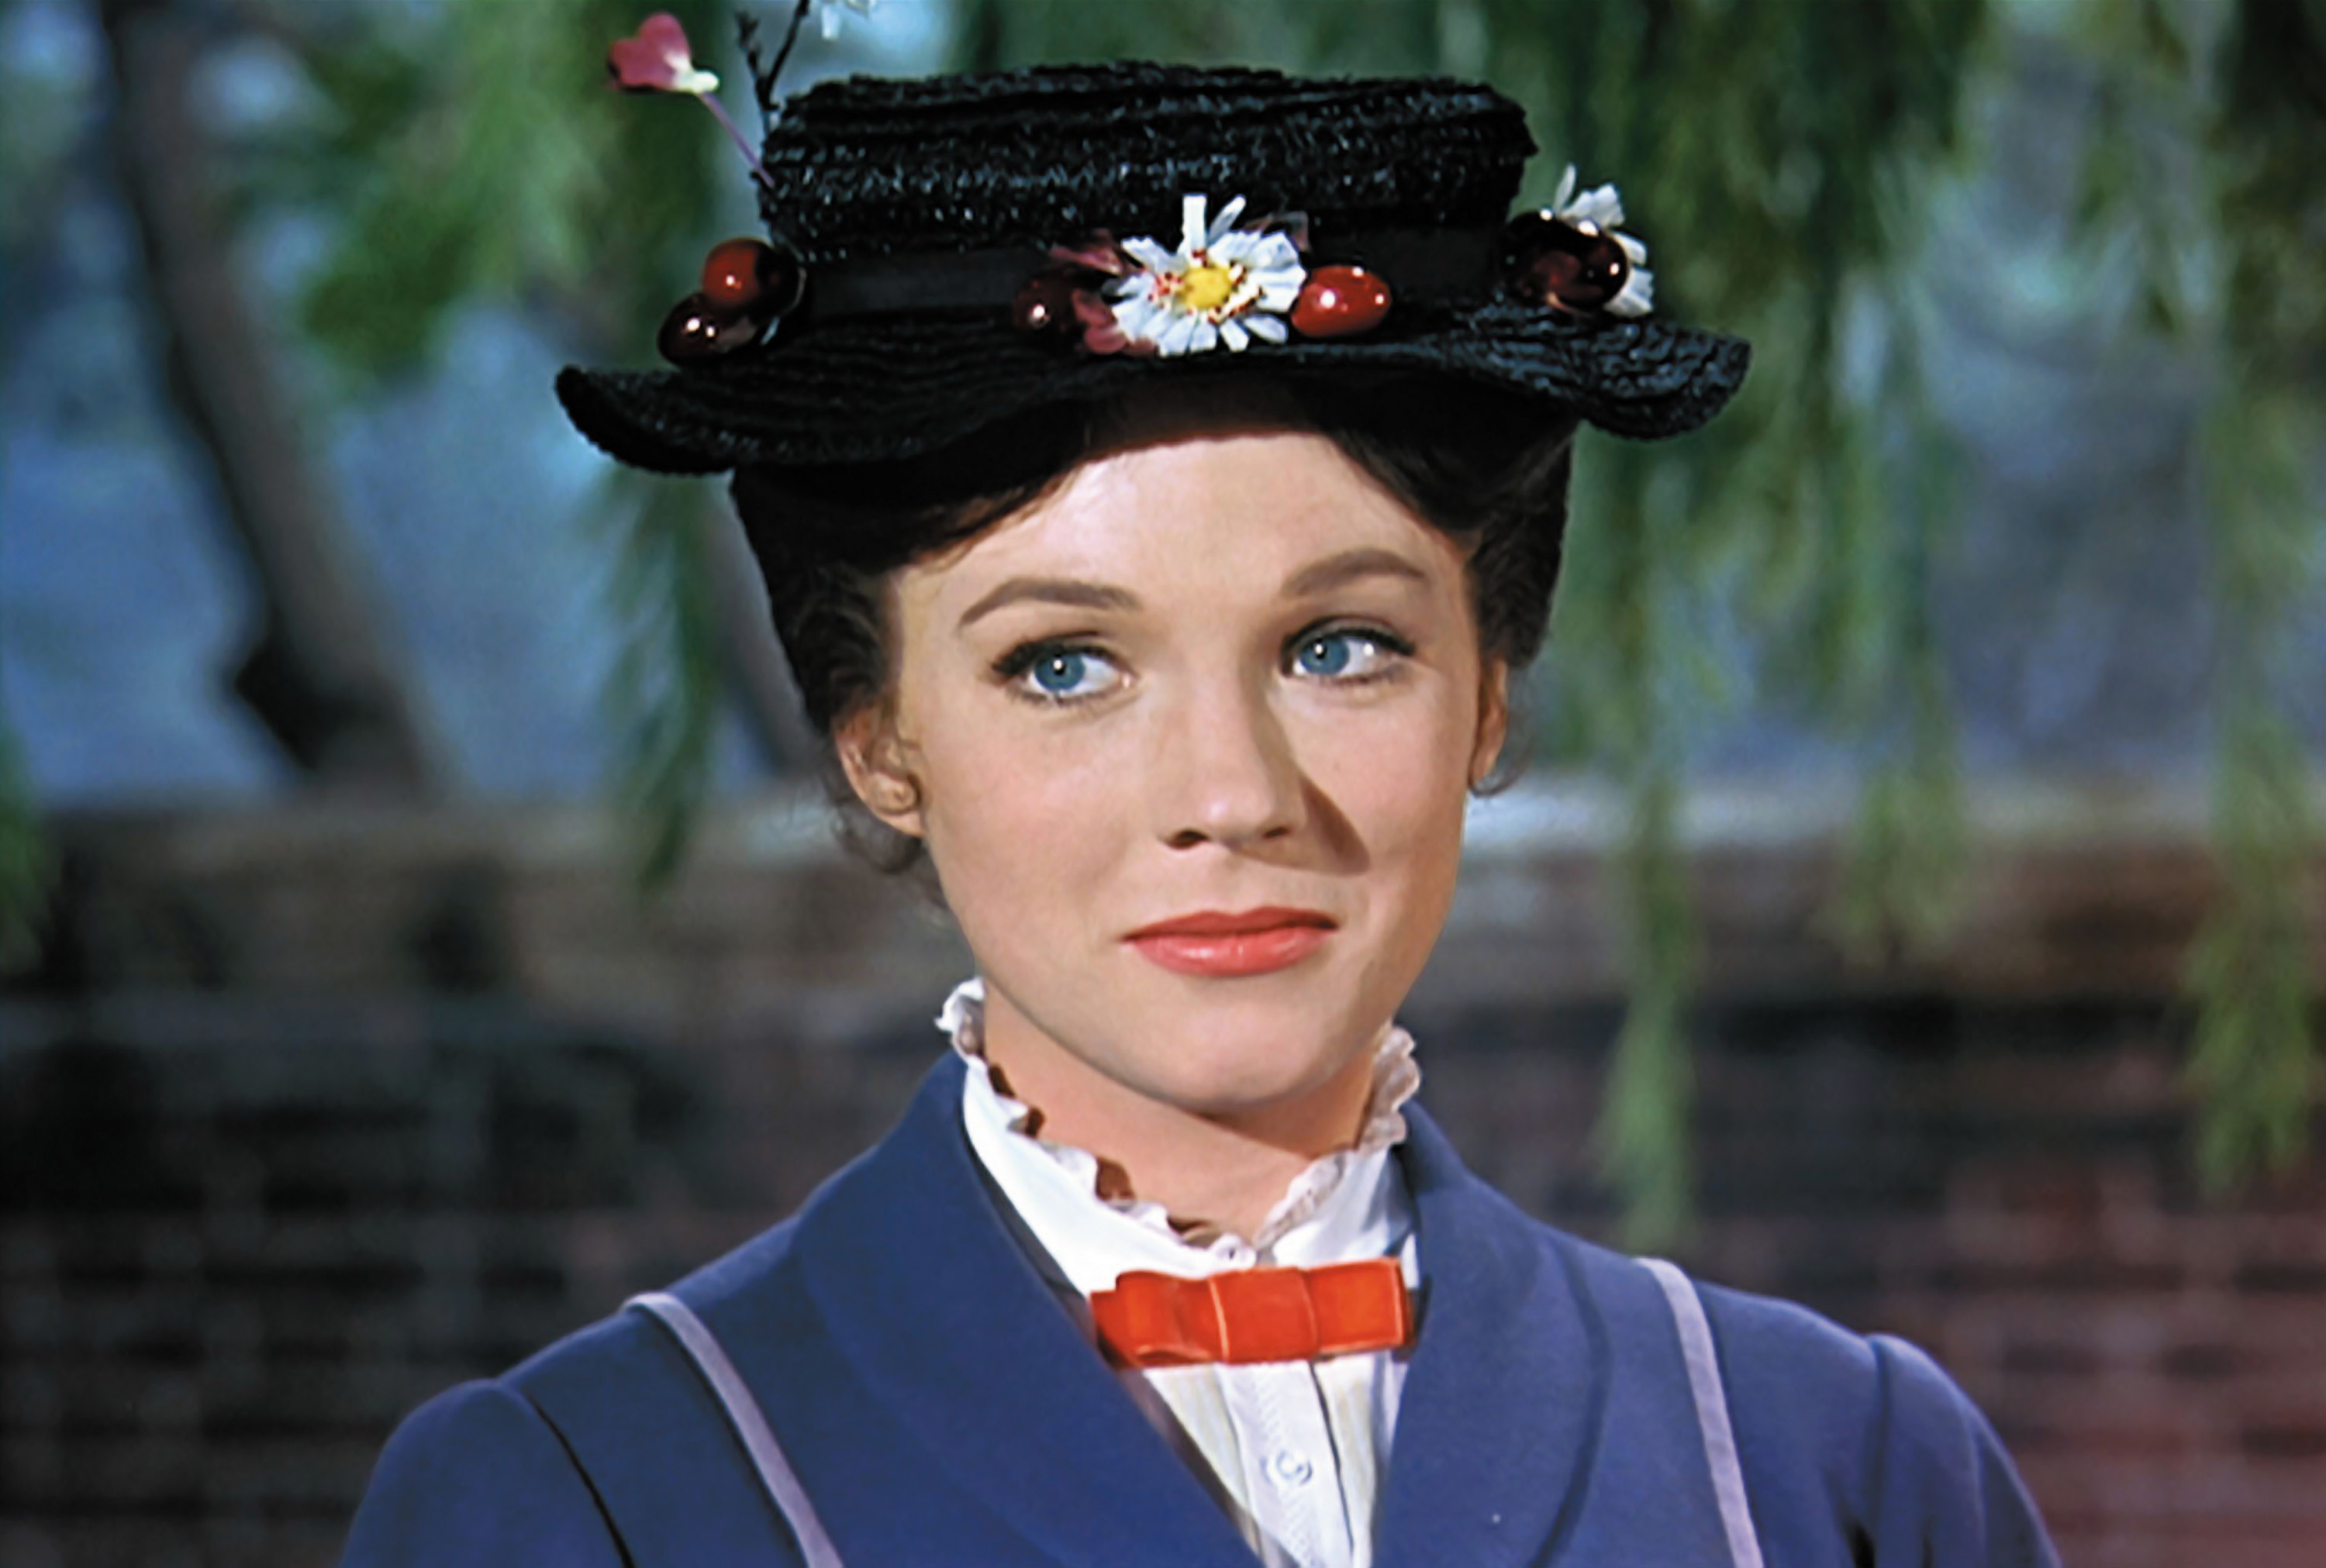 Buon compleanno Julie Andrews, Mary Poppins fa 80 anni